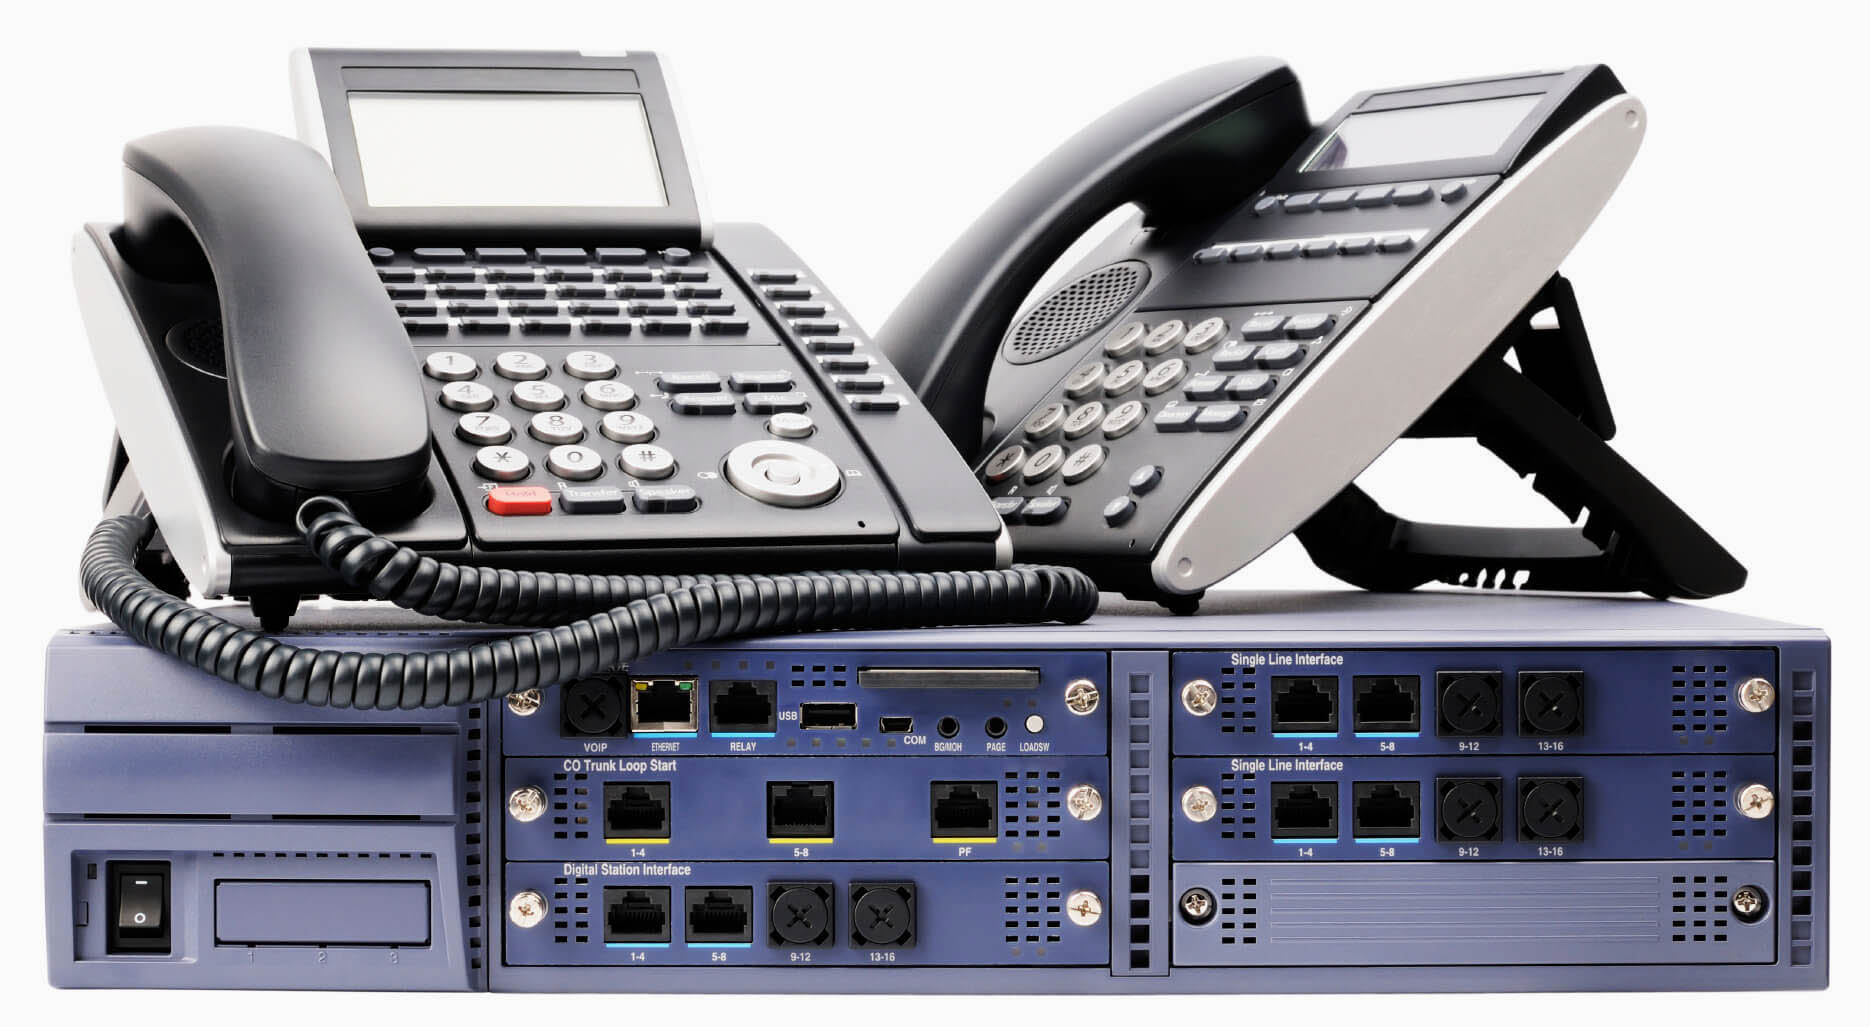 TechCore IP Phone Systems